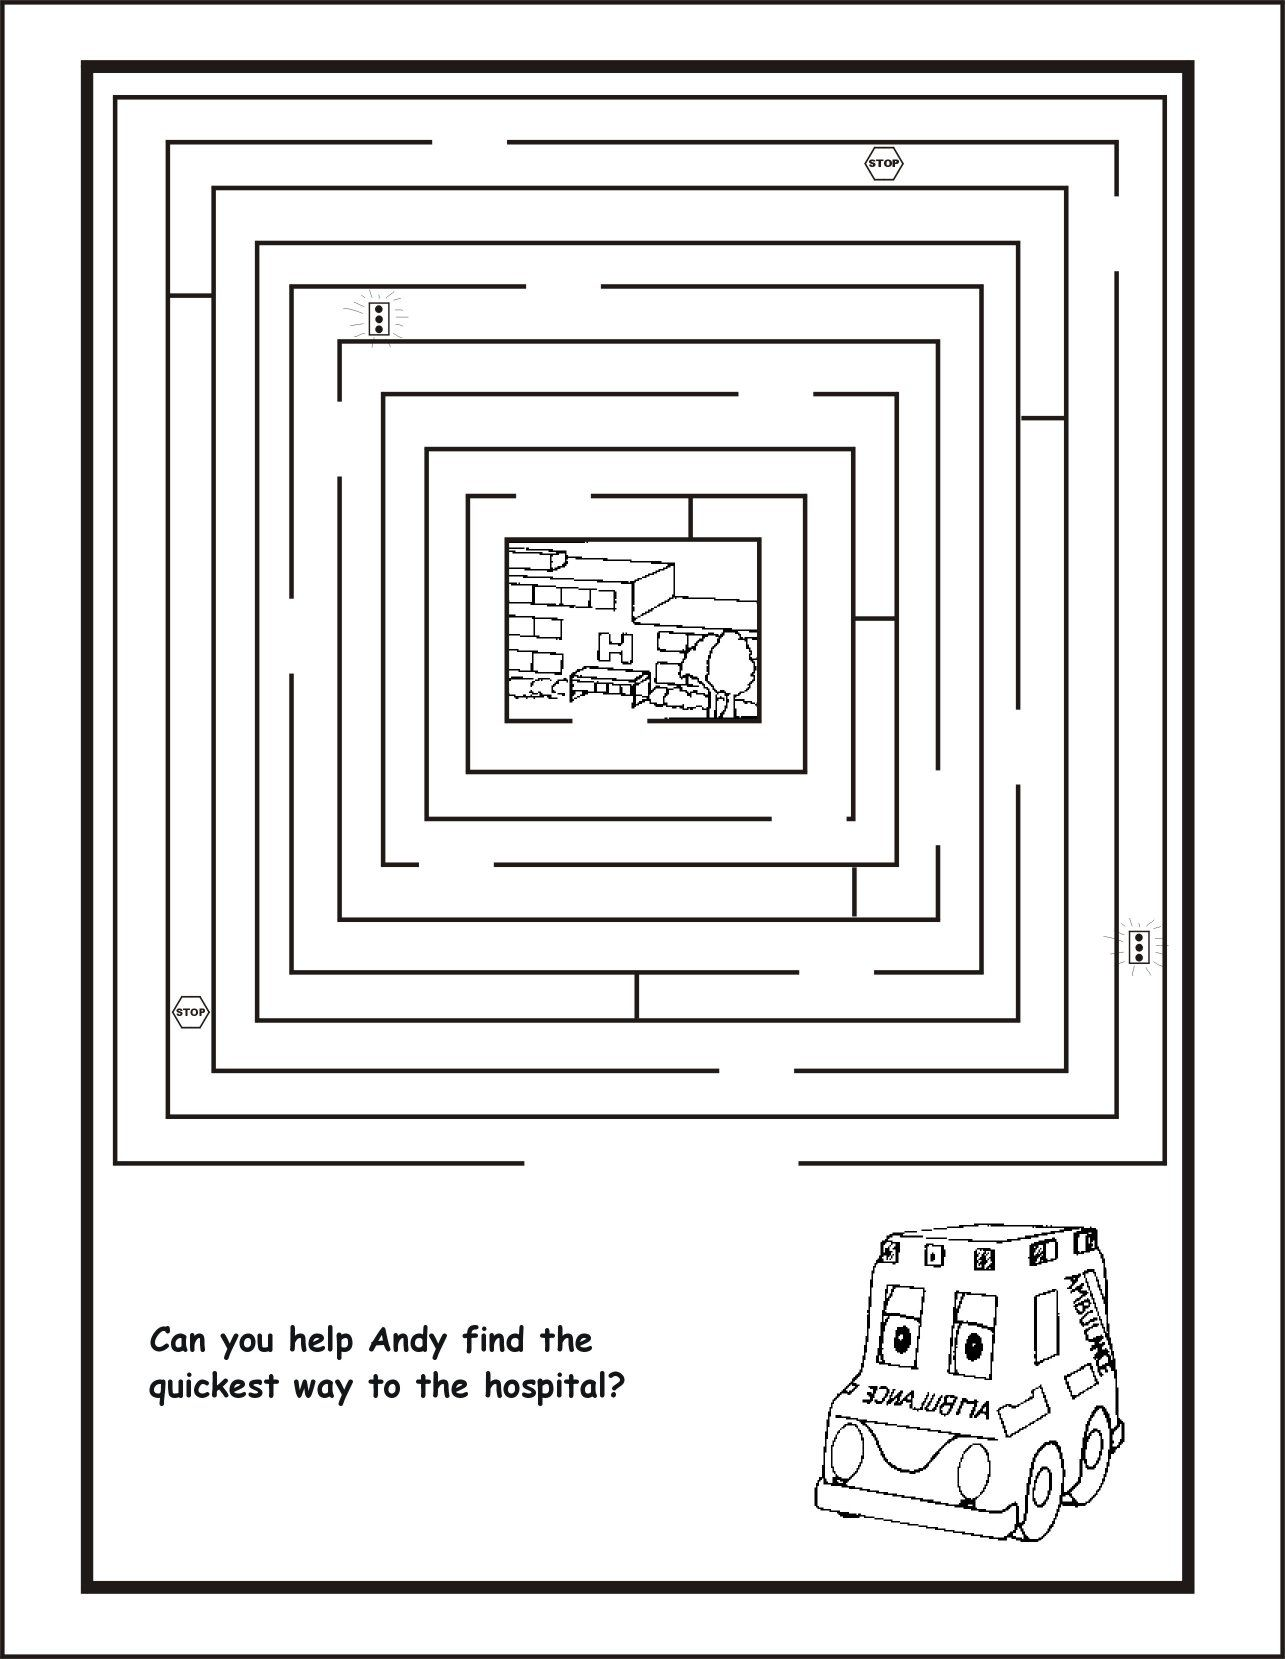 ambulance coloring pages | To view the larger version, click on each ...